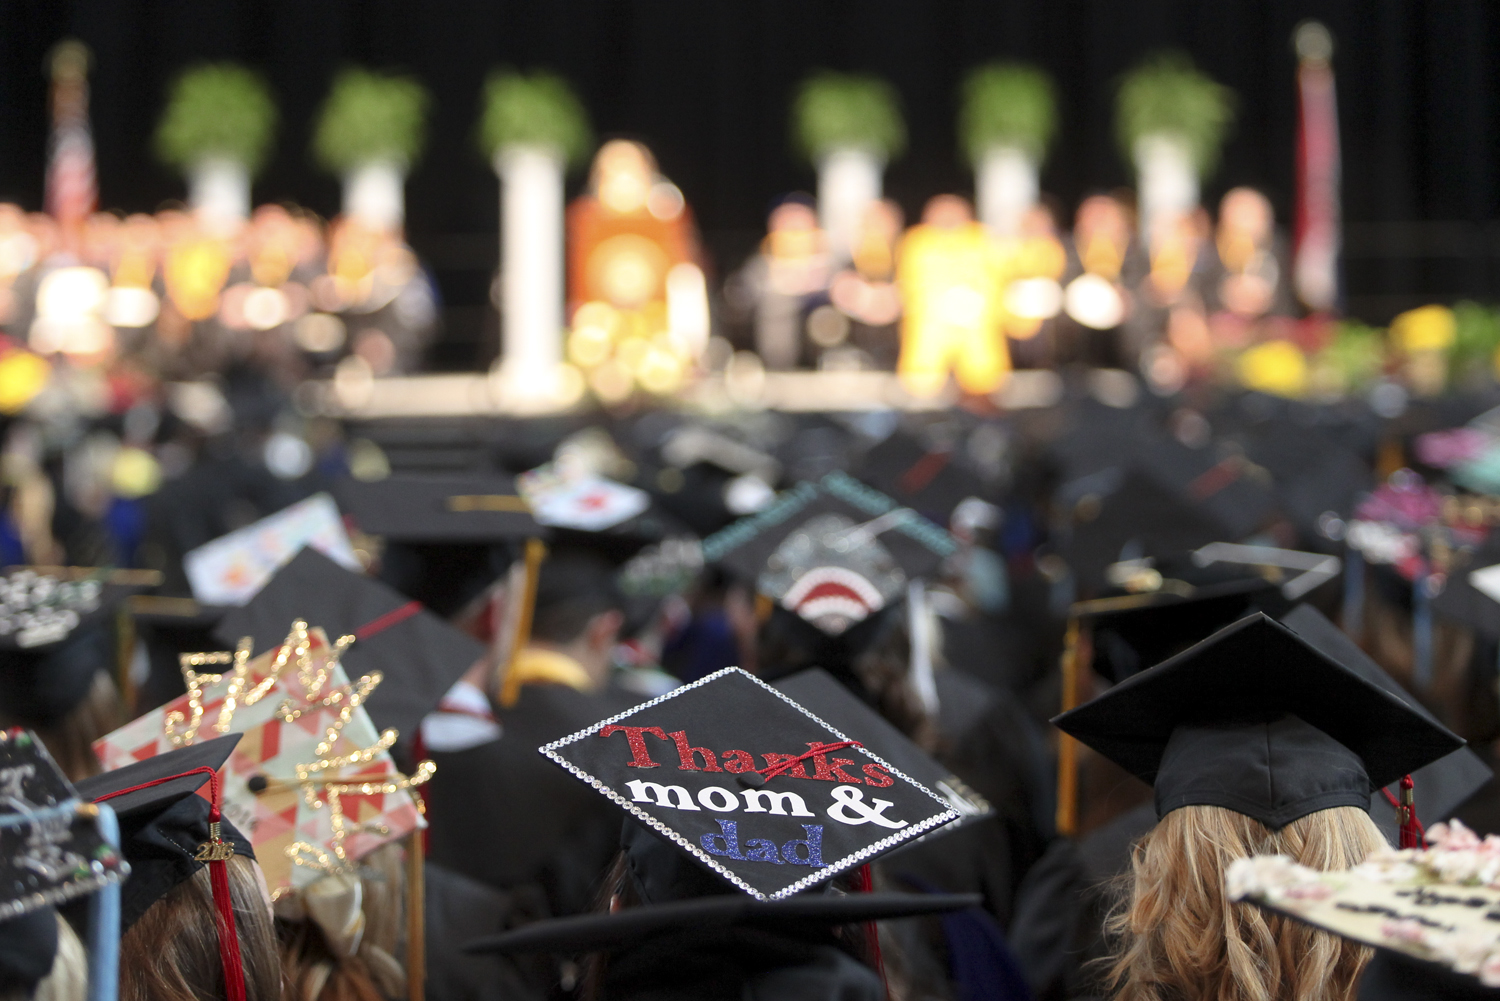 A message to parents decorates the top of a mortar board during a prior Honors Convocation. Photo by Rob Hill.